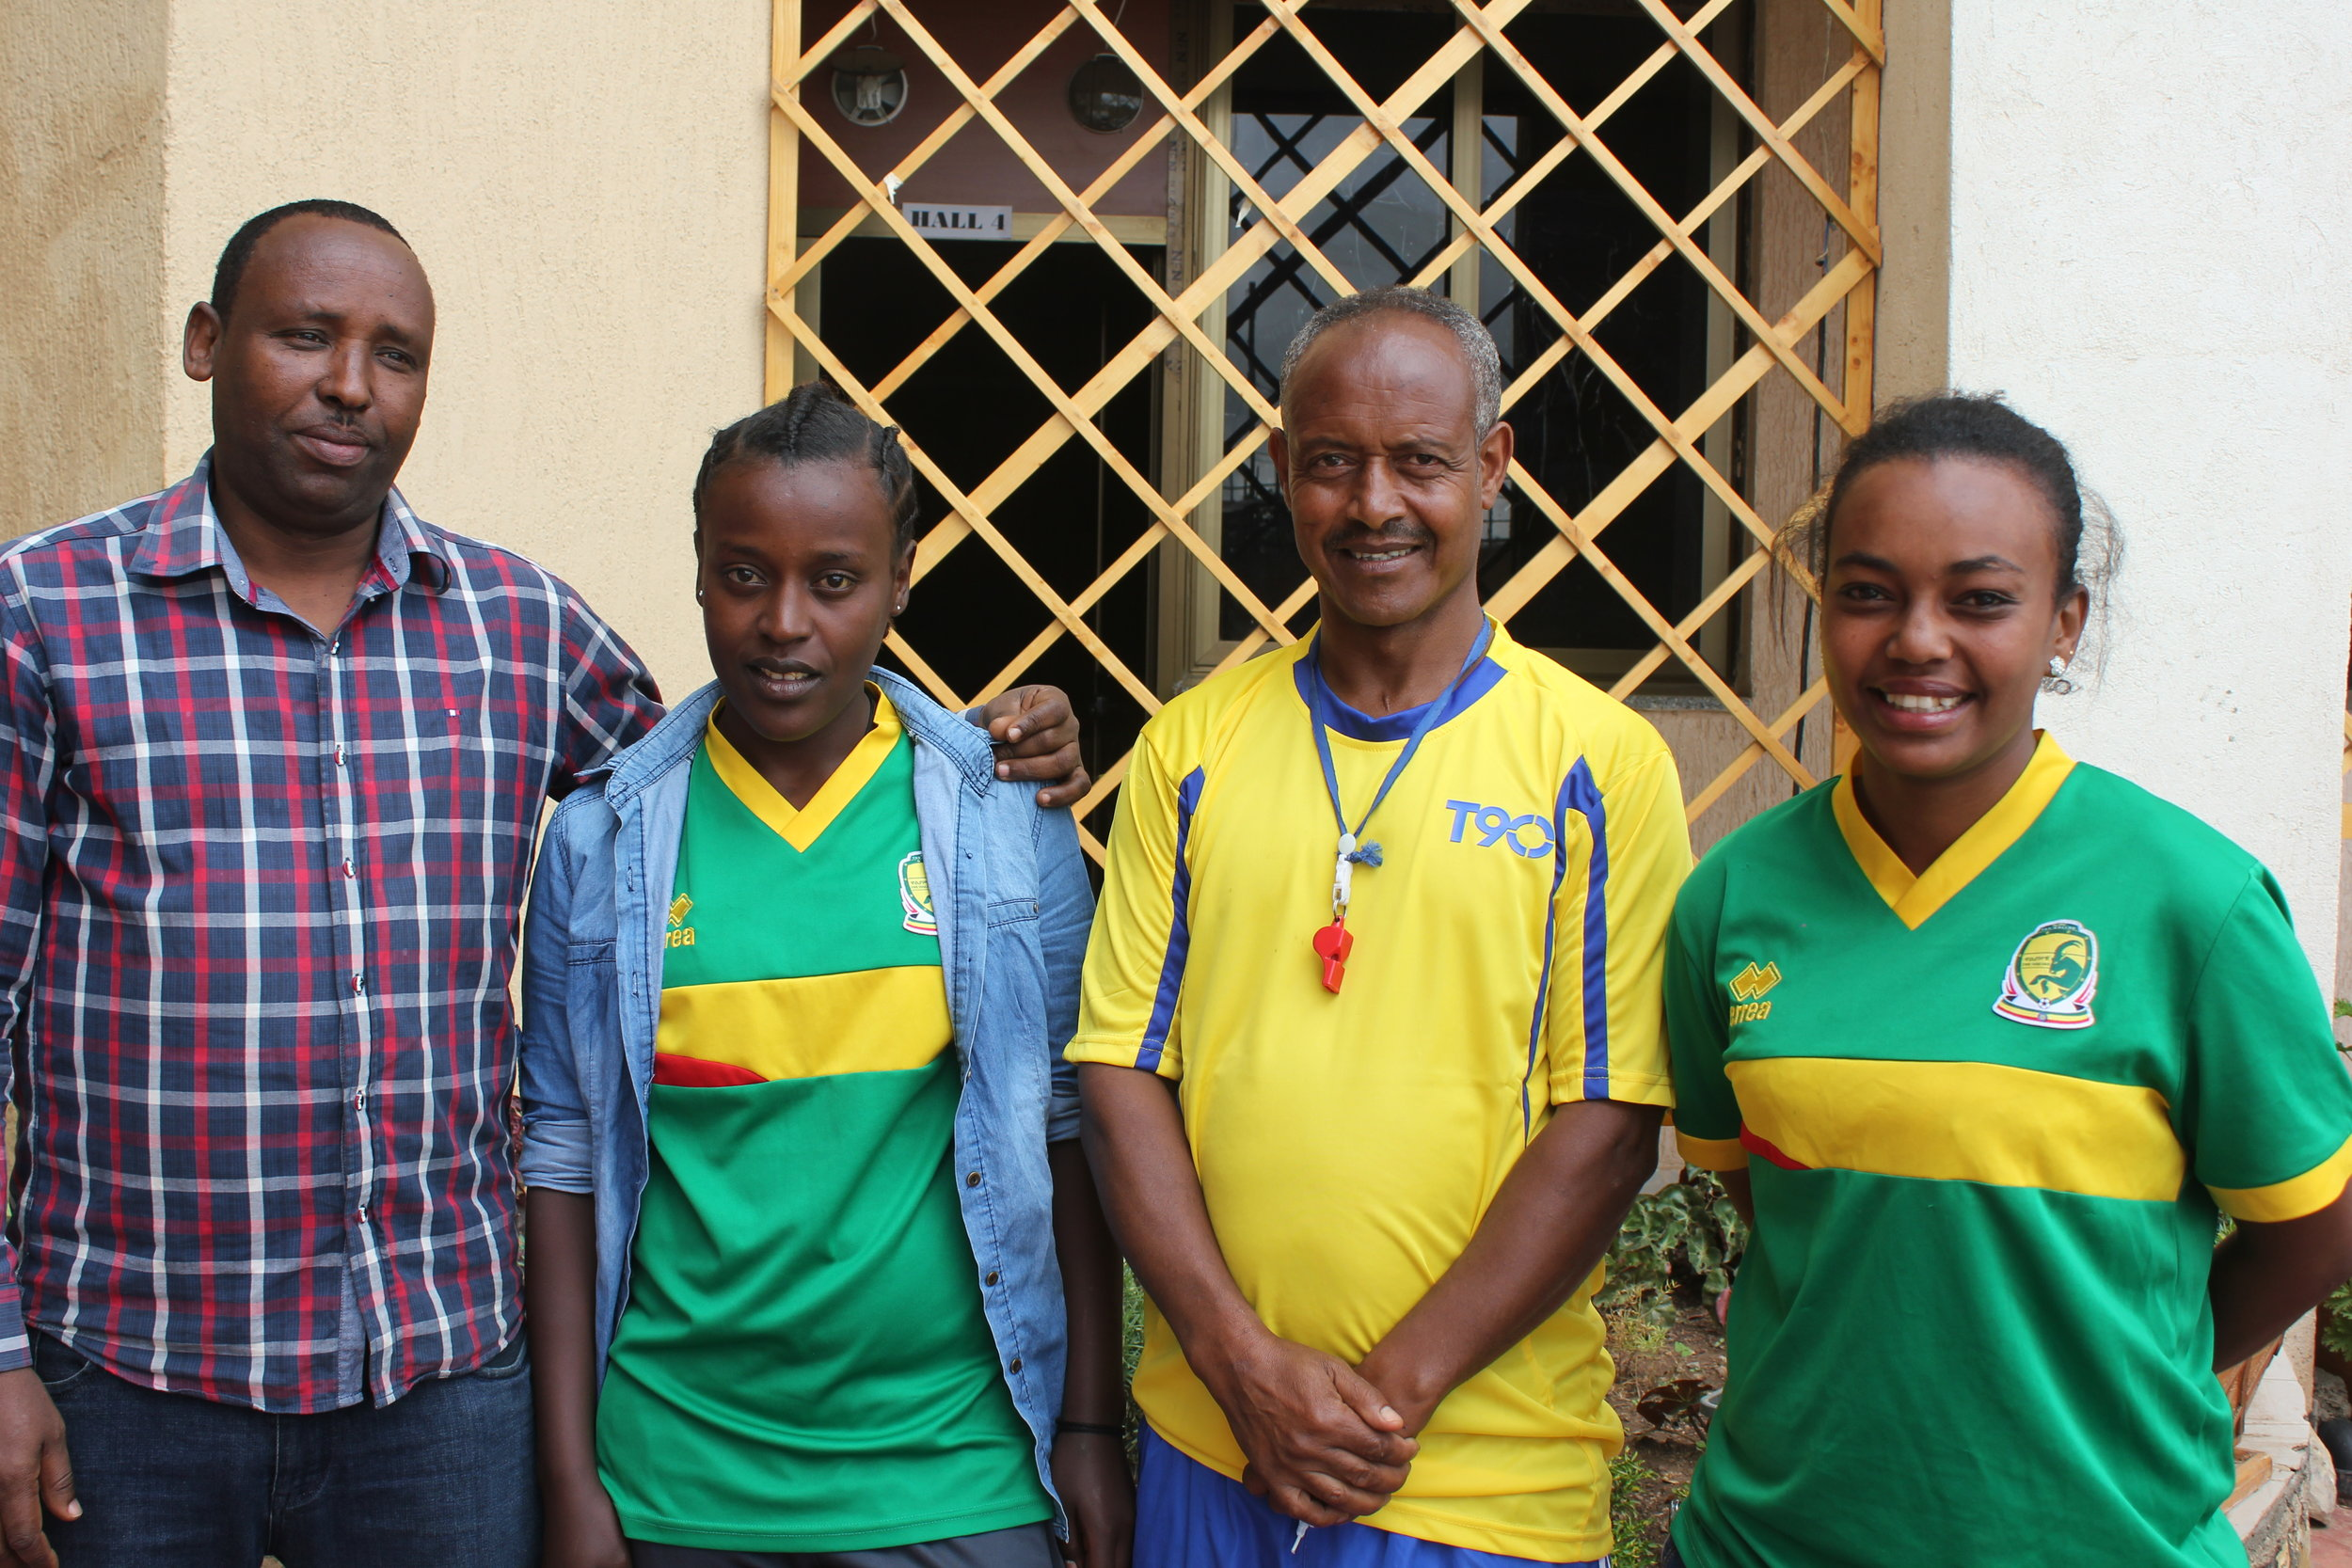 Coaches Jemal, Gelaye, Kaza and Sarah (from left to right).